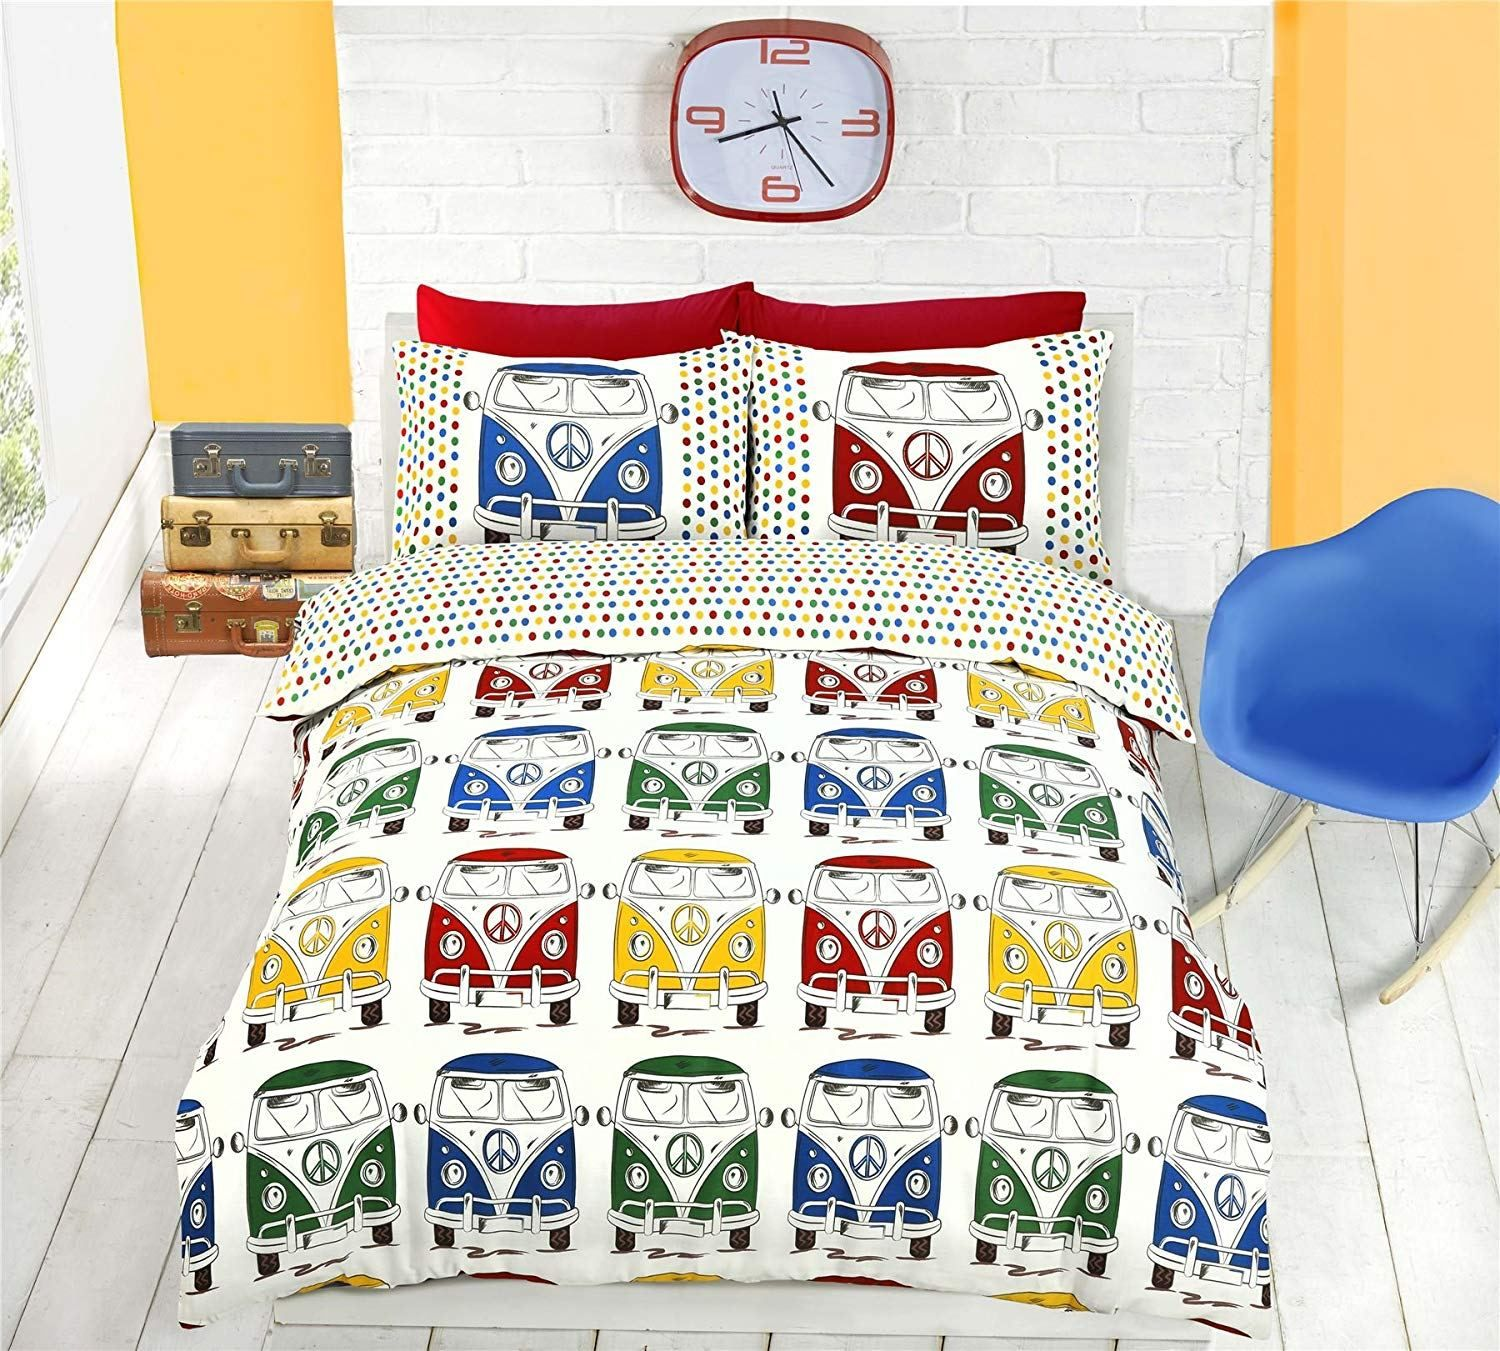 Queen Vw Camper Van Retro Duvet Cover & Pillowcases For